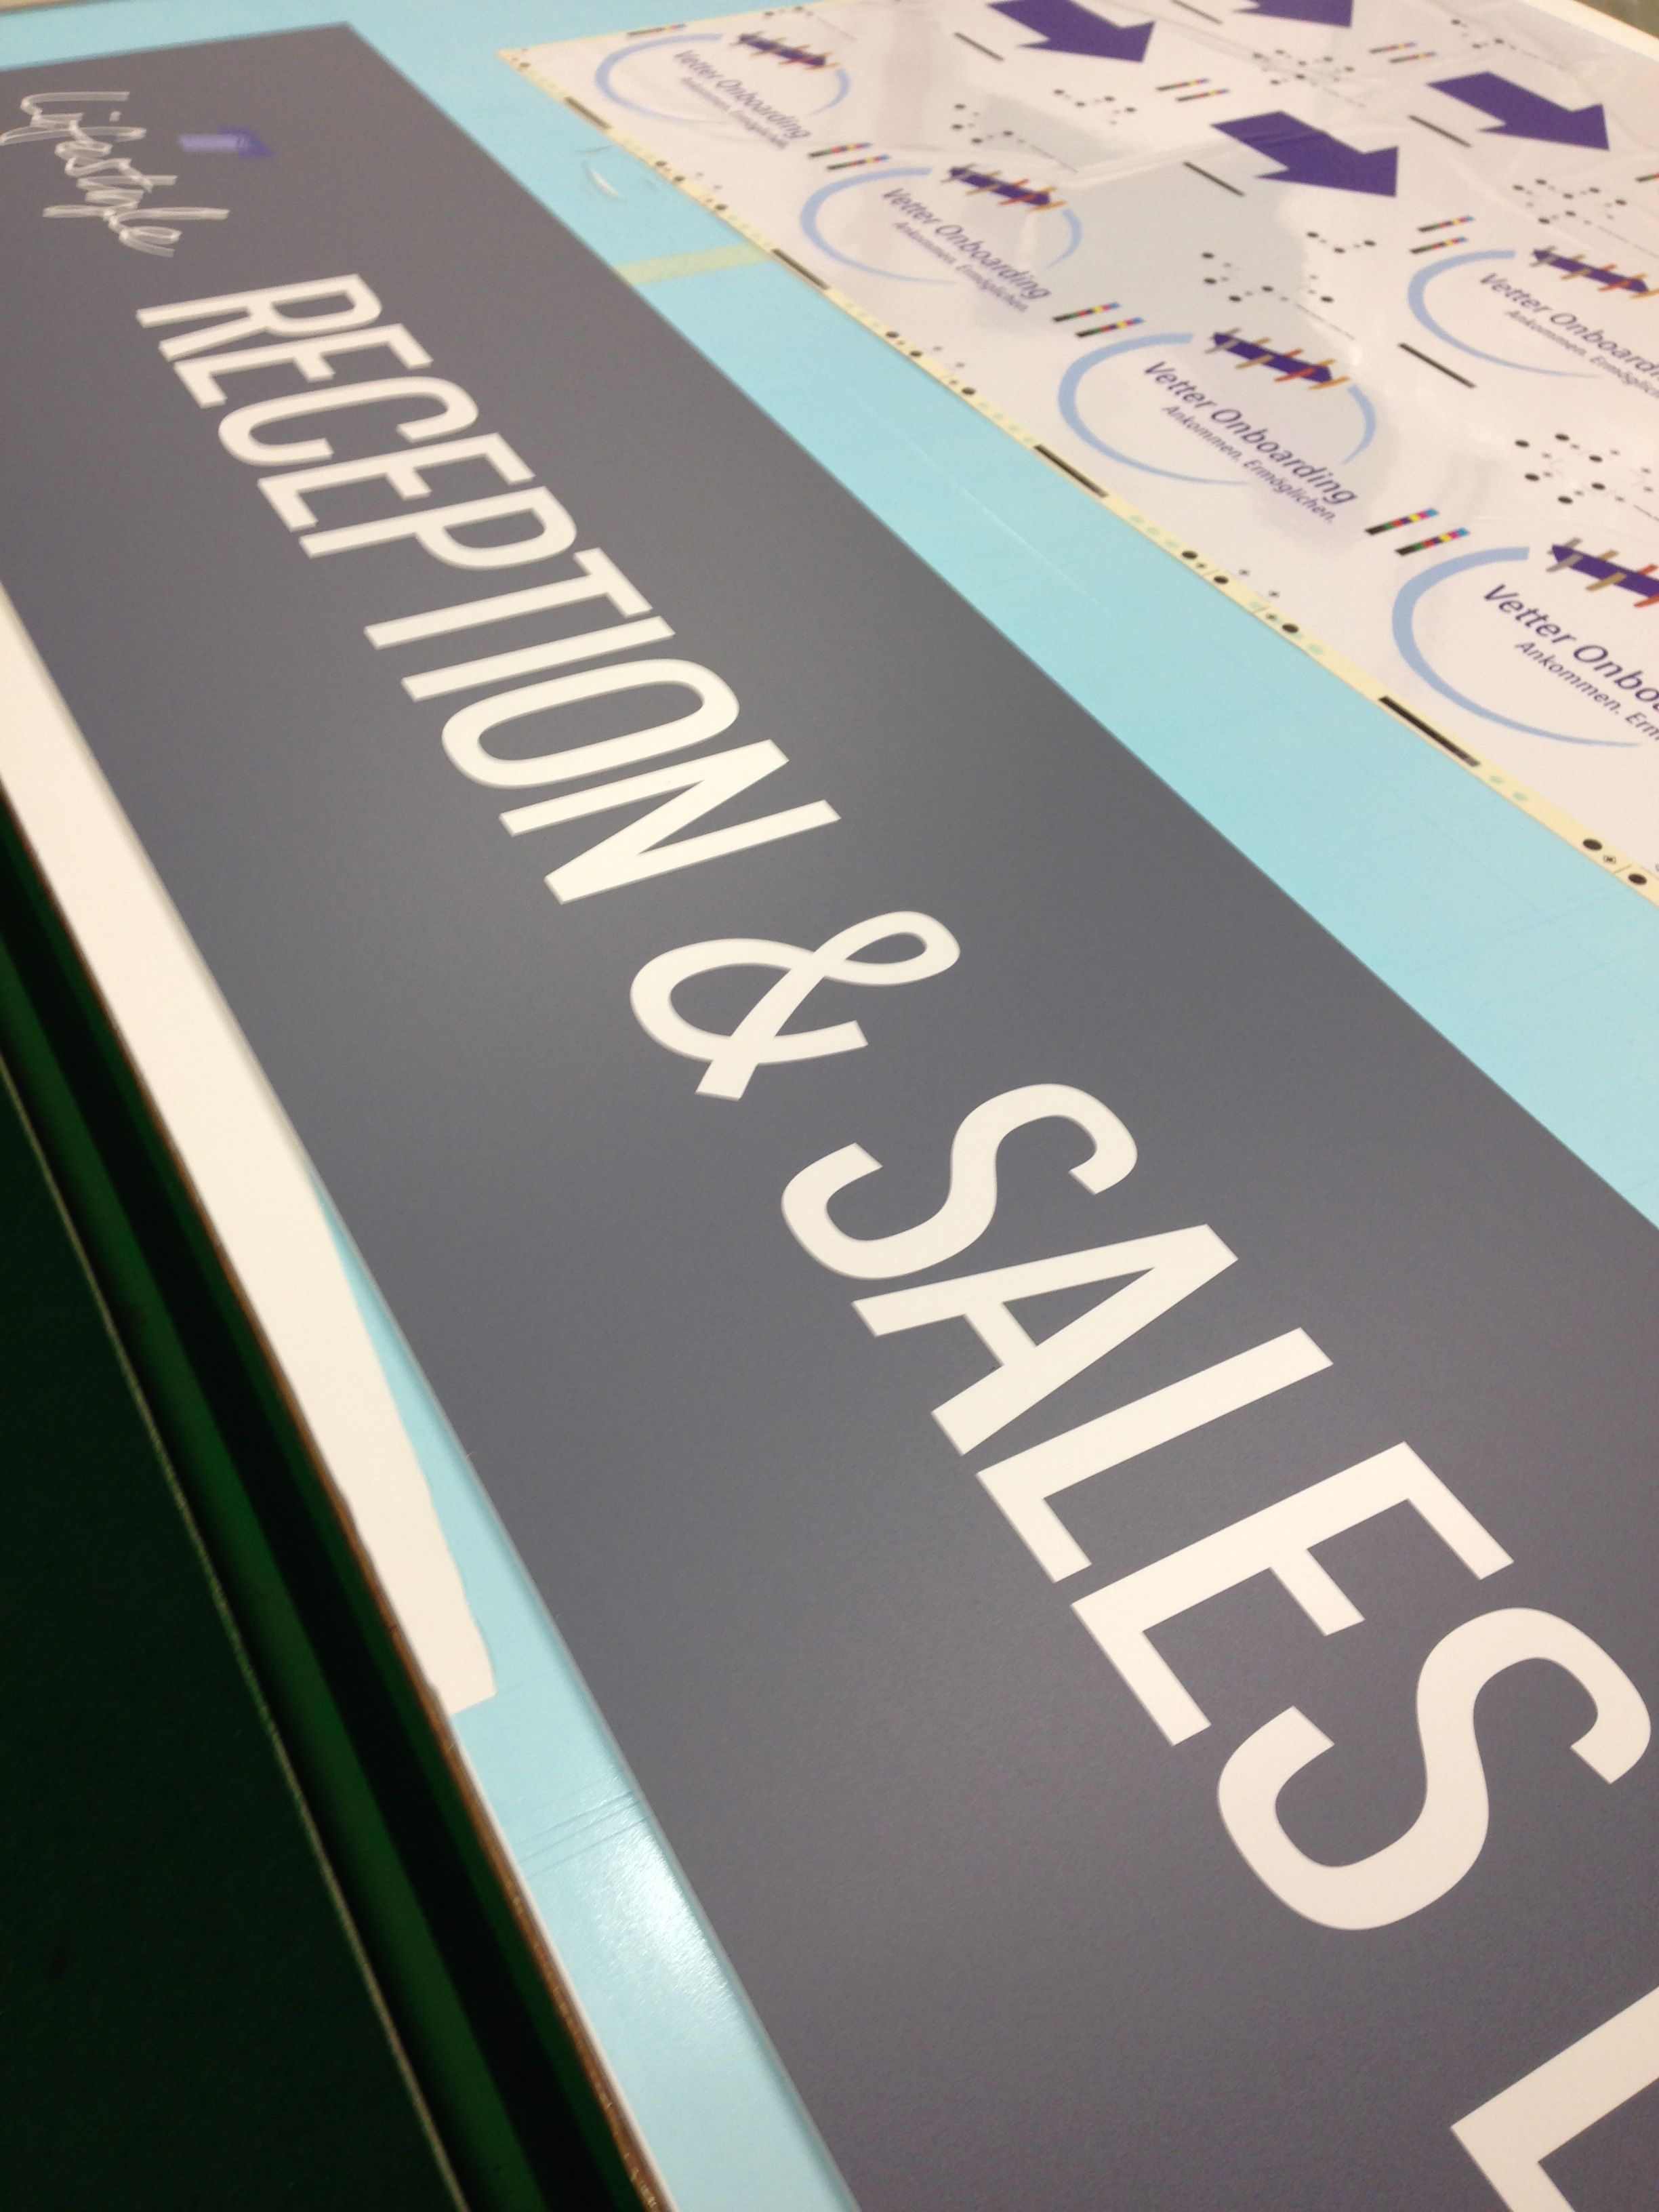 Information signs and panels printed printed to order. Print direct on to an array of sheet media in full colour. Finished in Matt, Gloss or Satin